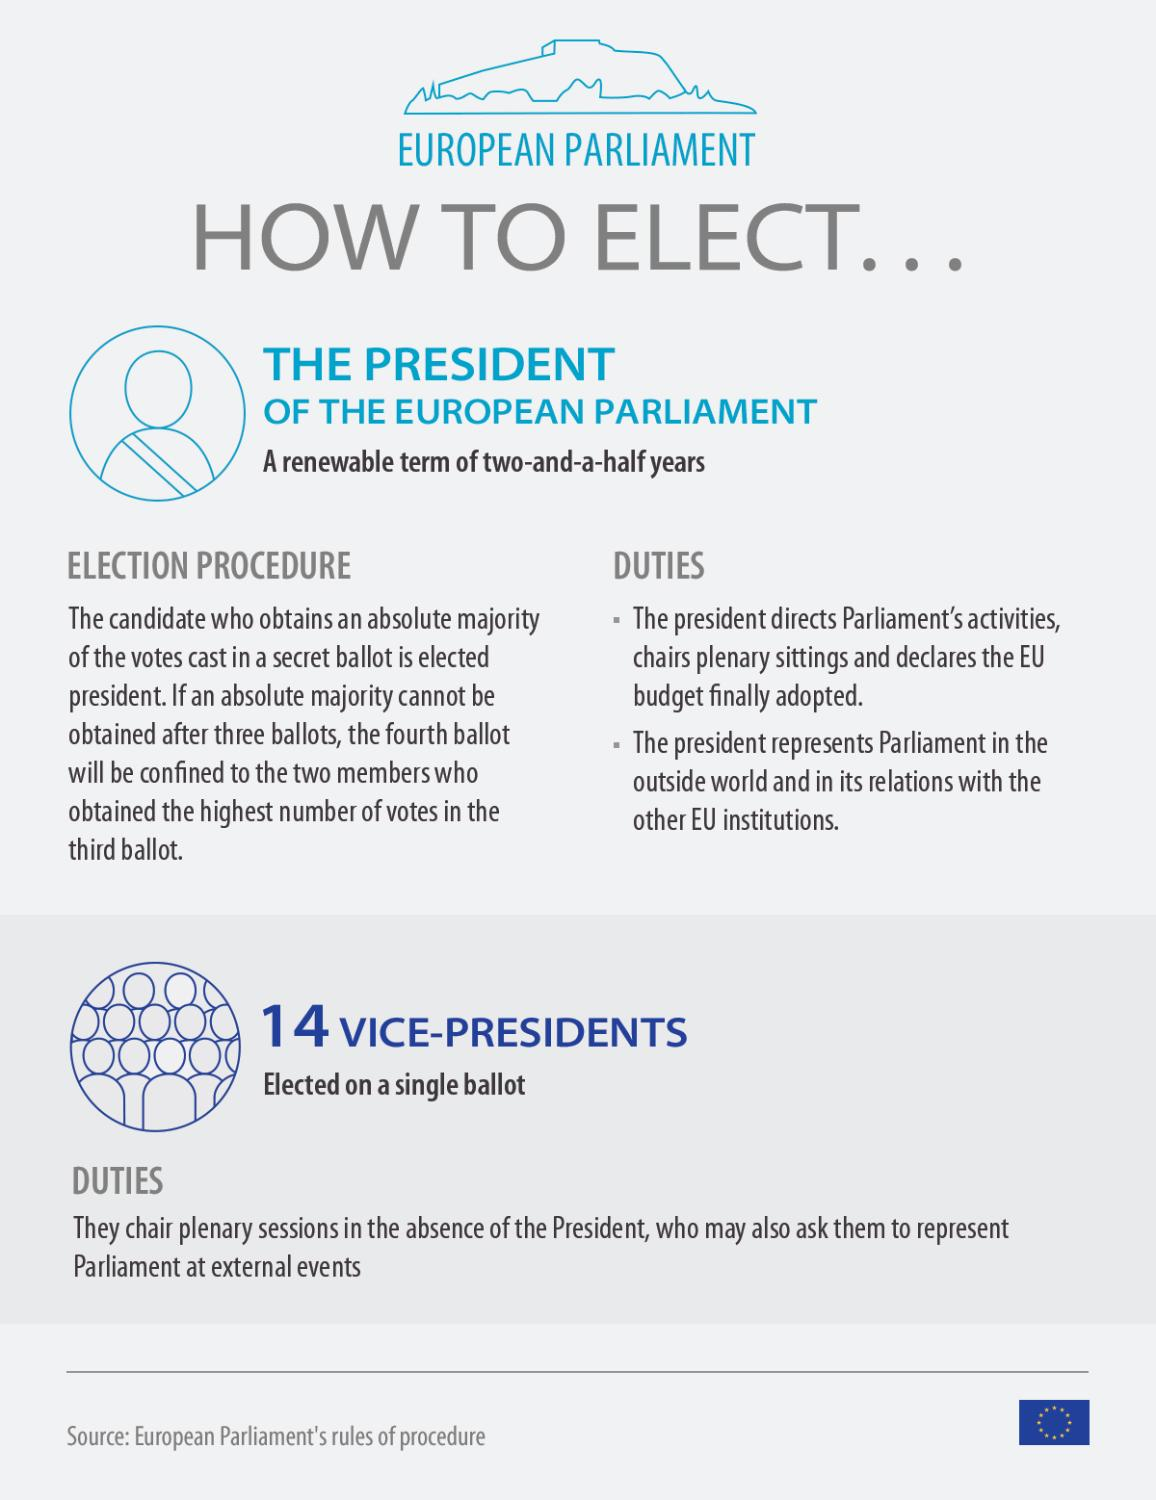 ifg on how to elect the EP president